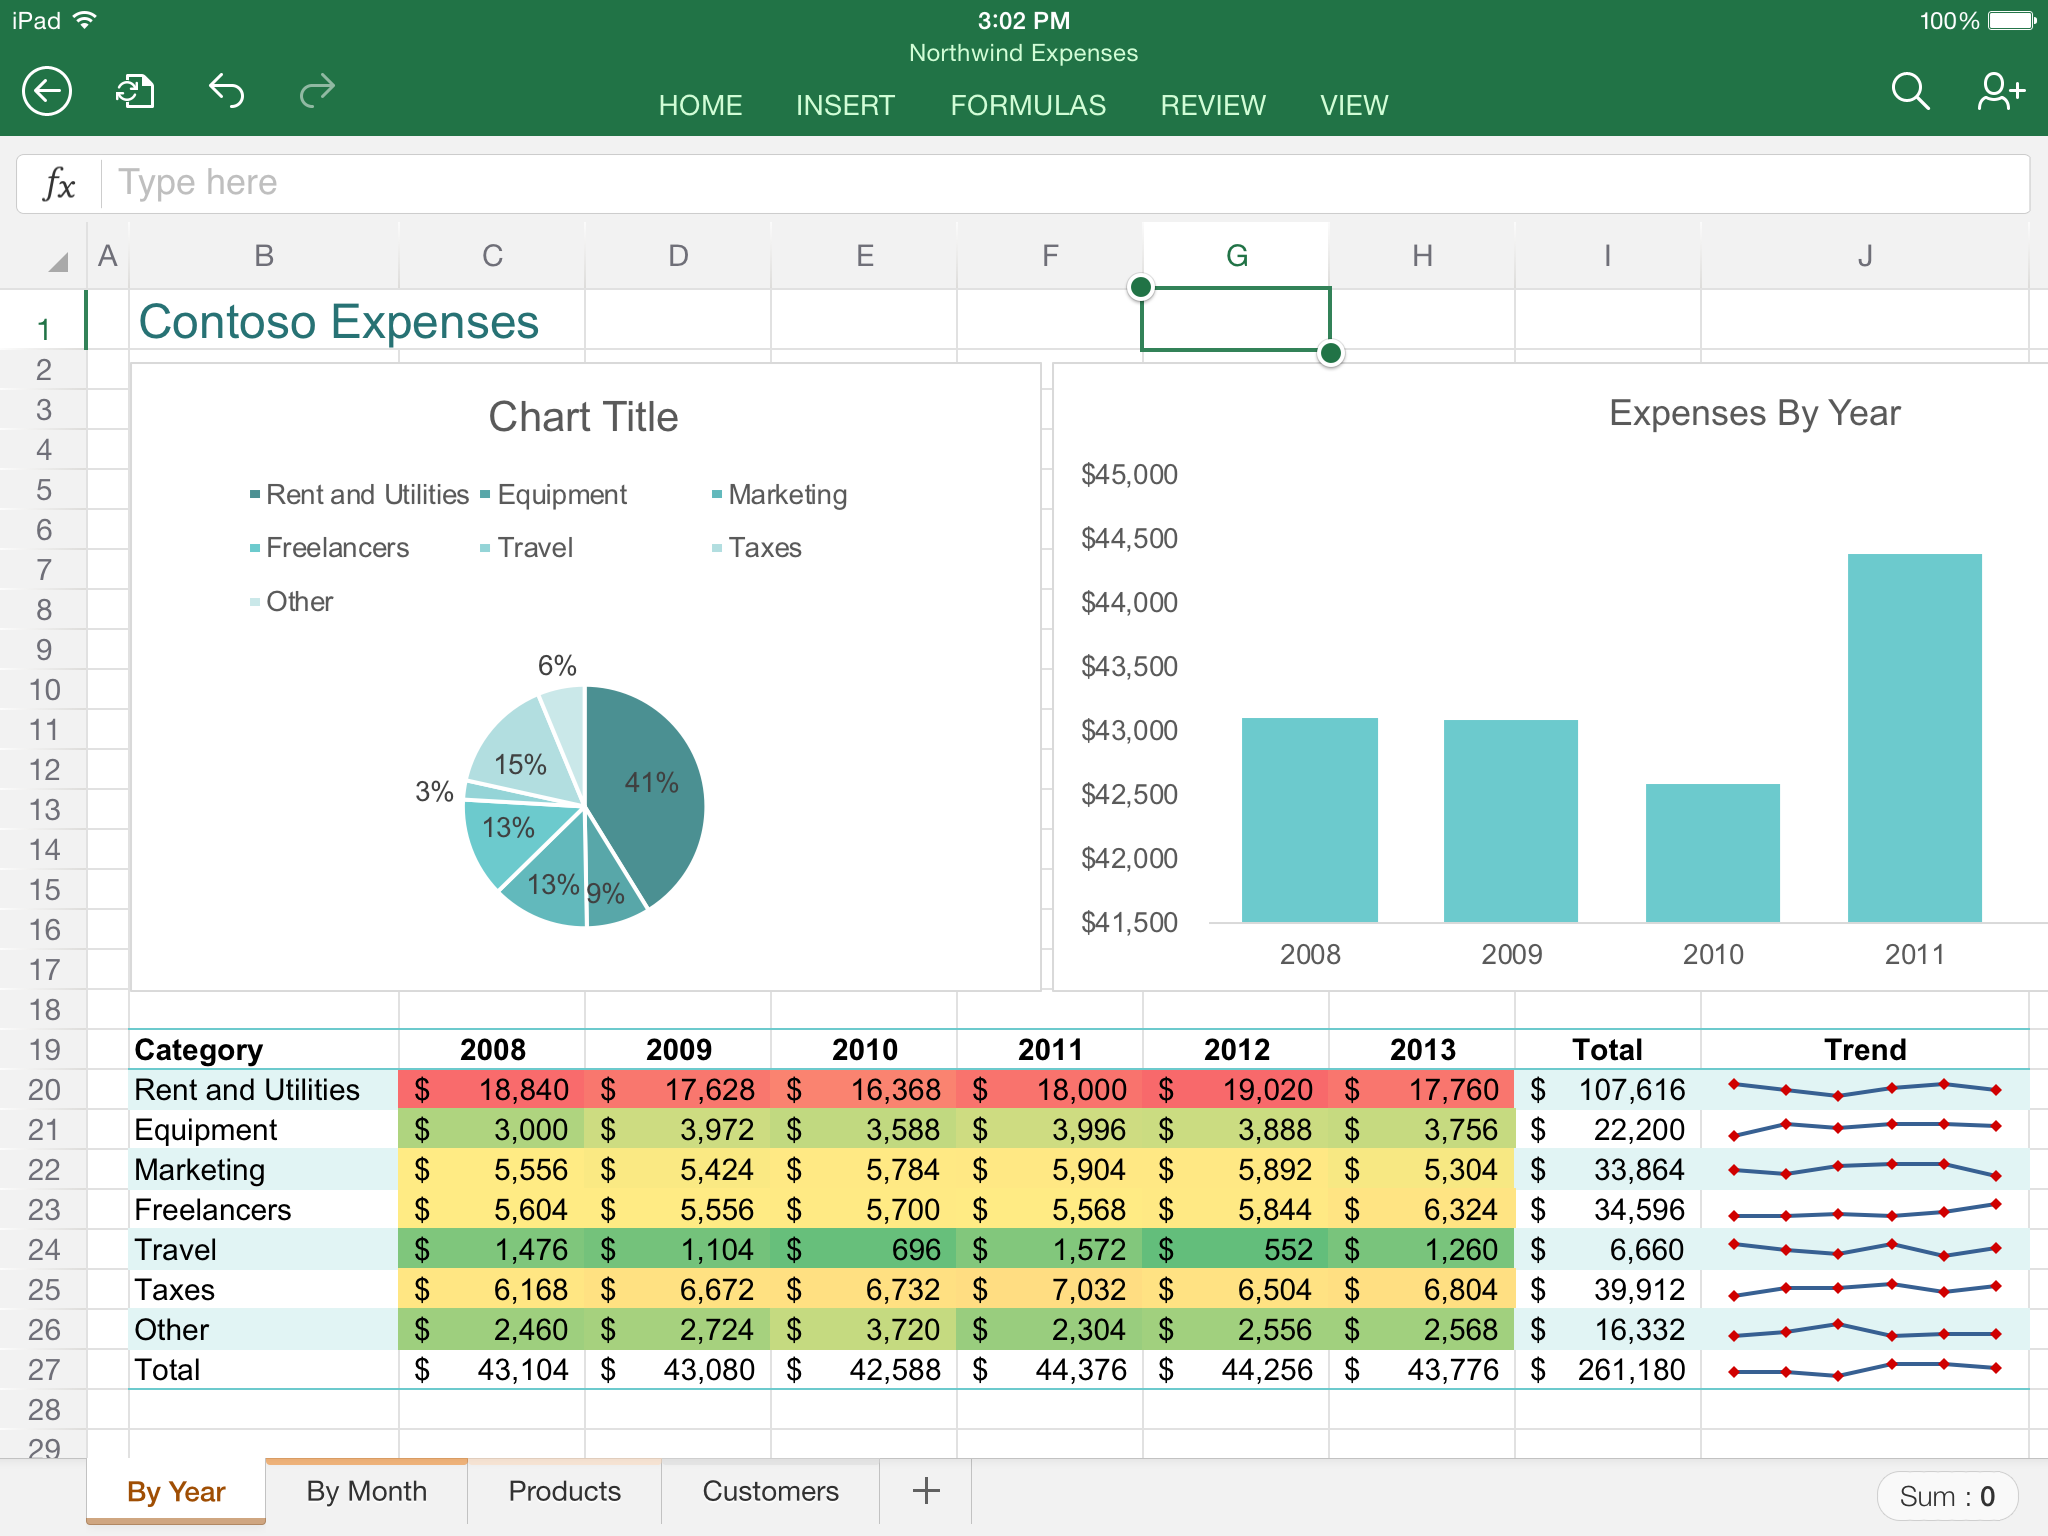 Ediblewildsus  Personable App Highlight Excel  Mobile Digital Now With Goodlooking Excel In Action With Lovely Excel  Also Excel Macro Save As Csv In Addition Freezing Cells Excel And Excel Convert To Hyperlink As Well As Format Function In Excel Additionally How To Use The Random Function In Excel From Youstonybrookedu With Ediblewildsus  Goodlooking App Highlight Excel  Mobile Digital Now With Lovely Excel In Action And Personable Excel  Also Excel Macro Save As Csv In Addition Freezing Cells Excel From Youstonybrookedu